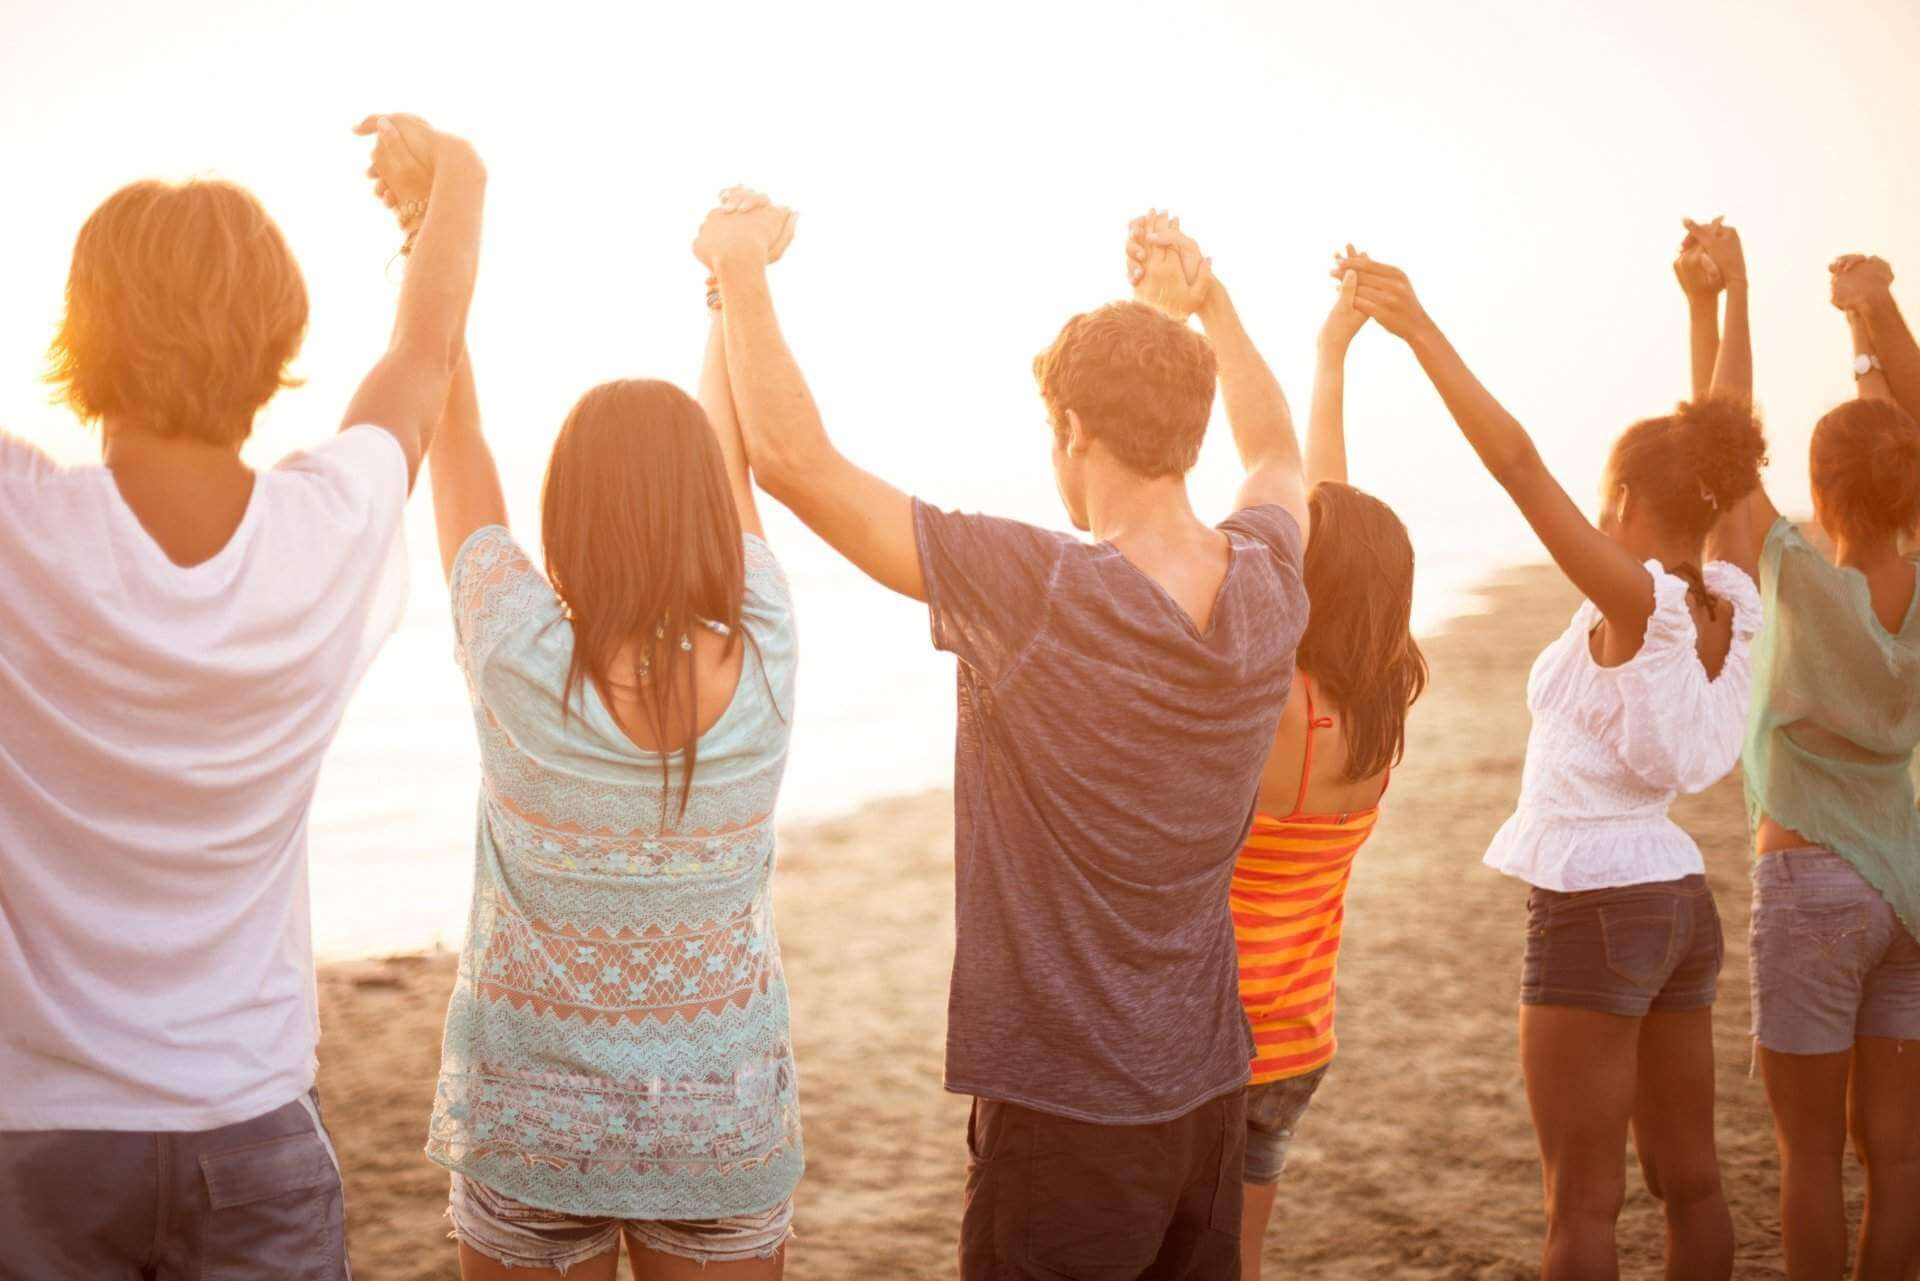 People-holding-hands-Beach-iStock-482877799-cropped2-1